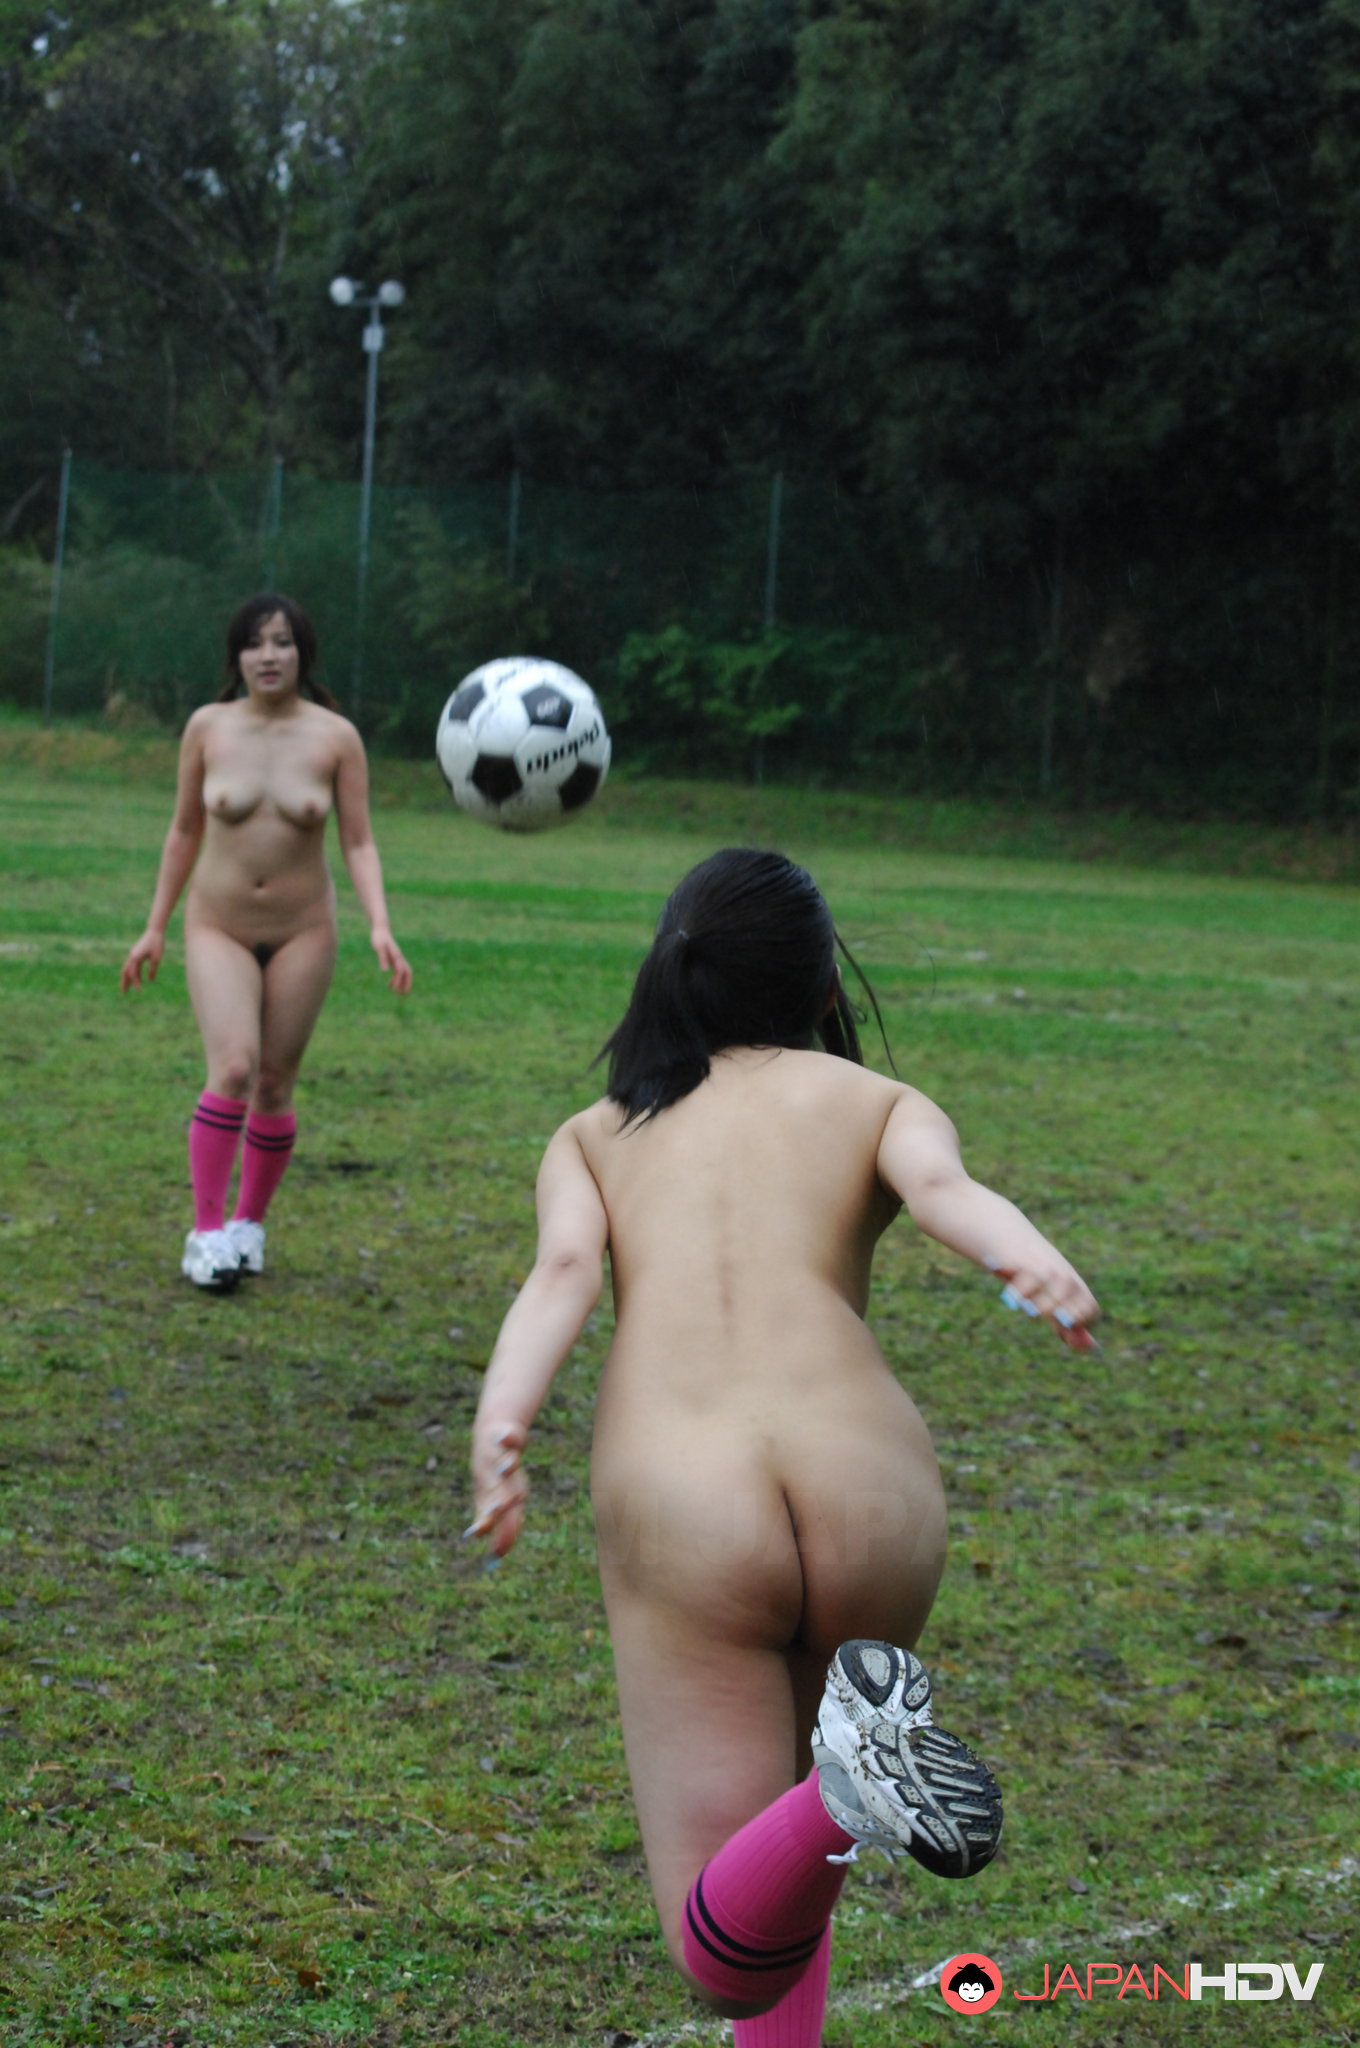 Naked girls playing soccer nude precisely does